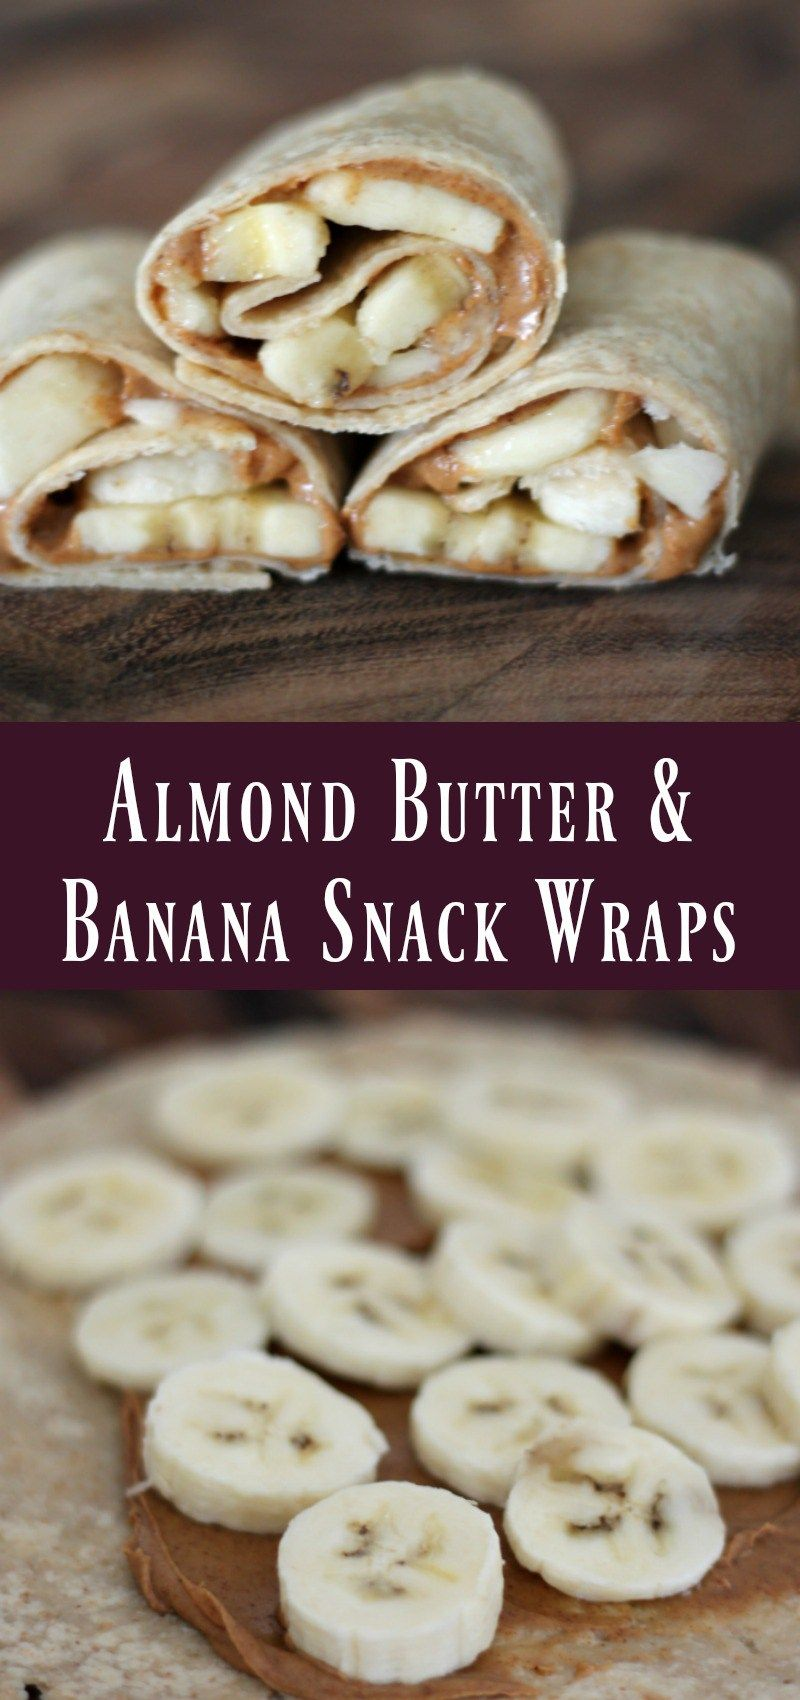 Almond Butter & Banana Snack Wraps – Organize Yourself Skinny